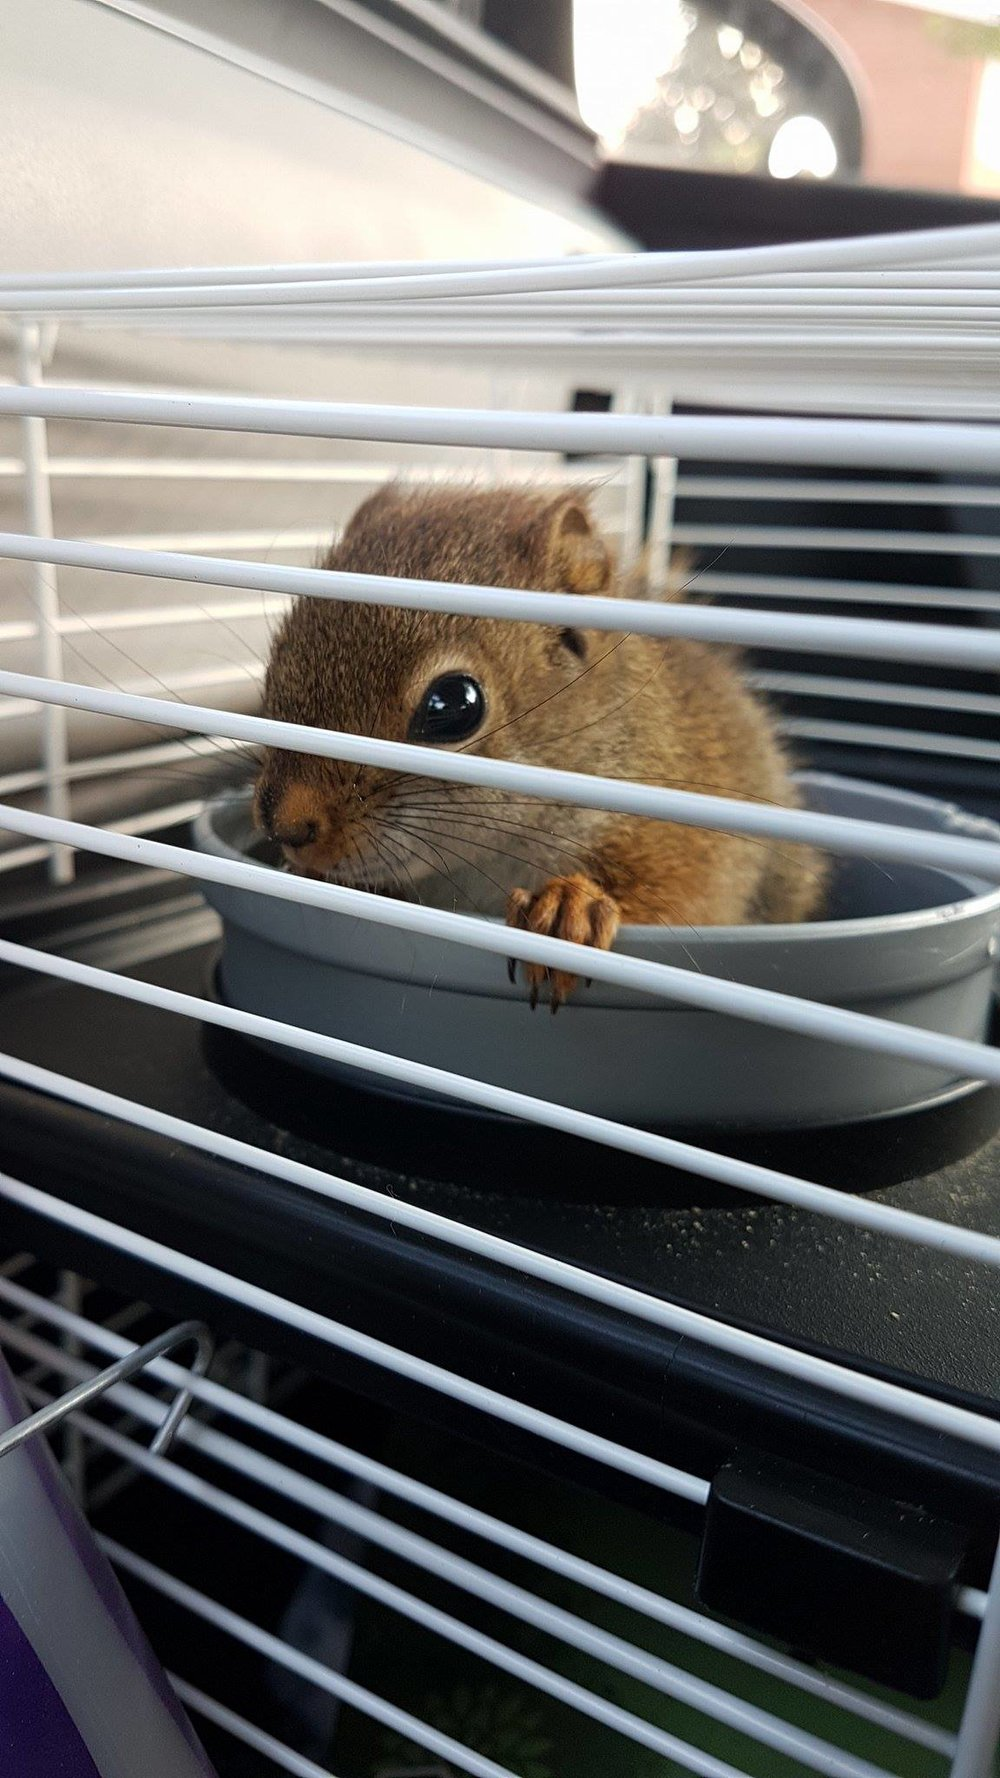 This is the little baby that we rescued. Hopefully soon enough he will be in living with the other red squirrels there! <3